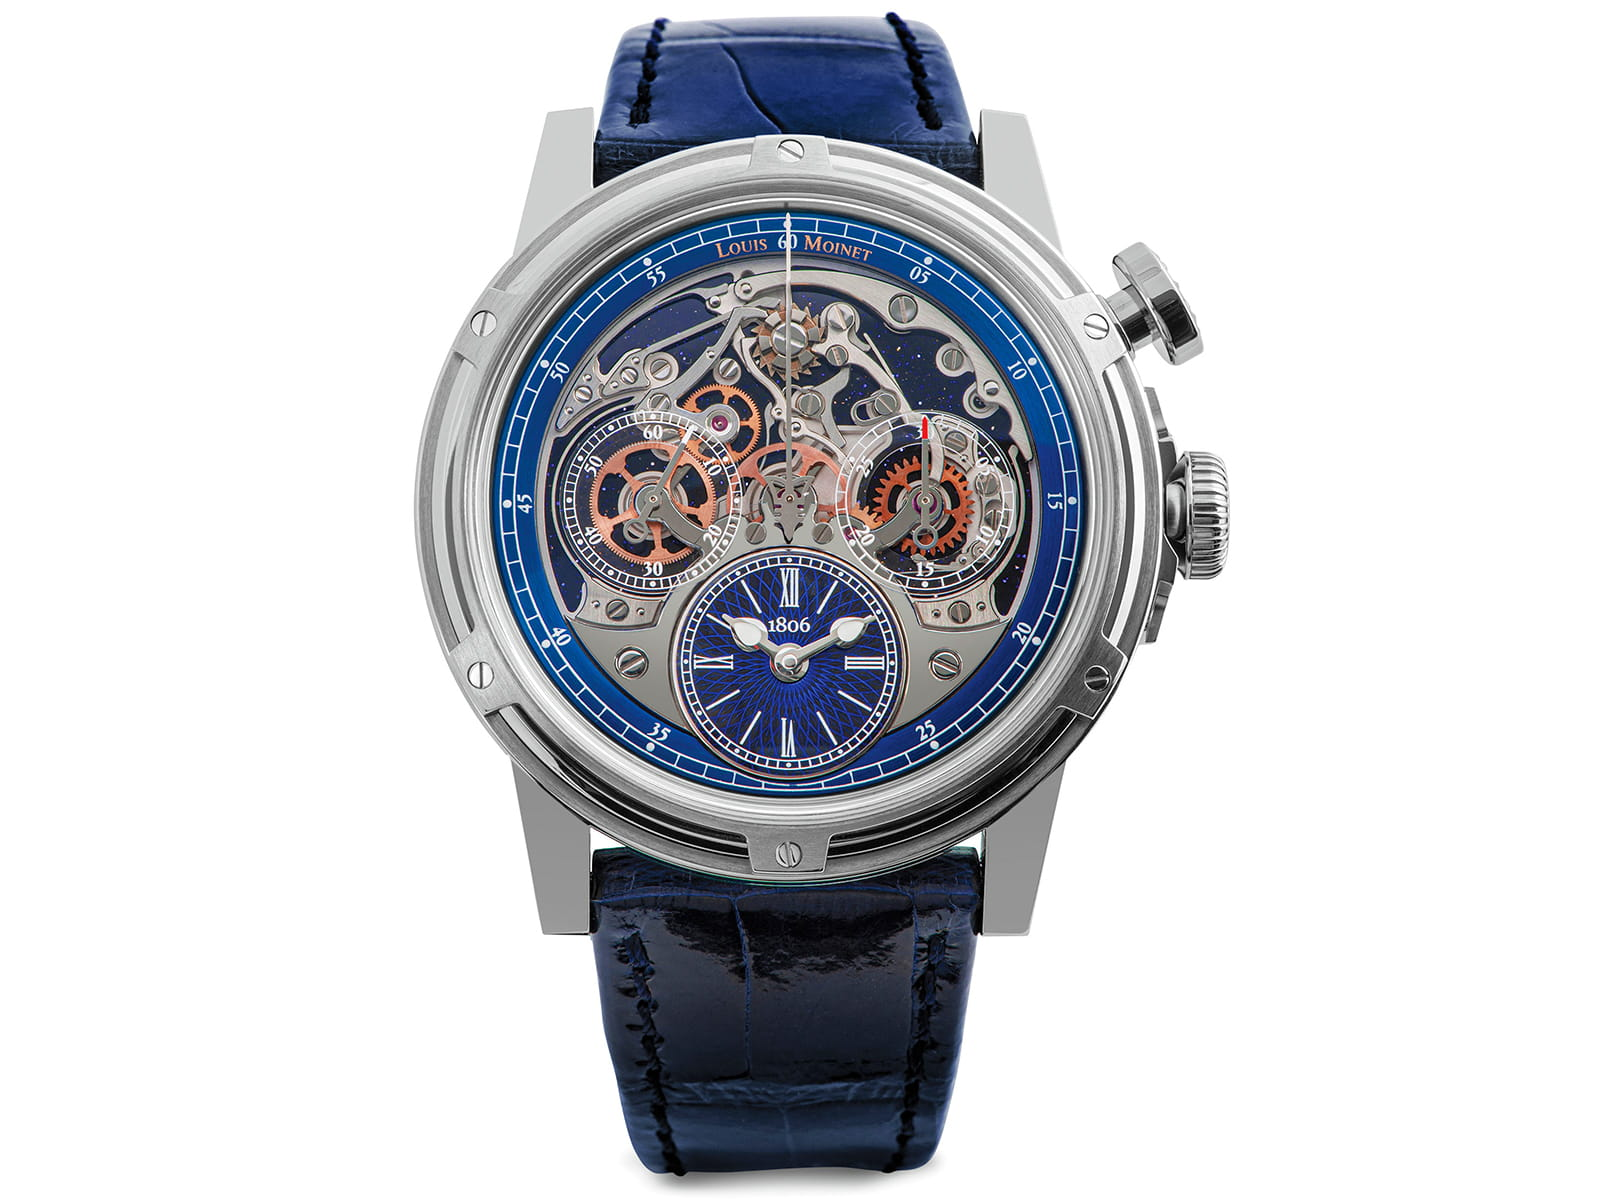 louis-moinet-memoris-only-watch.jpg